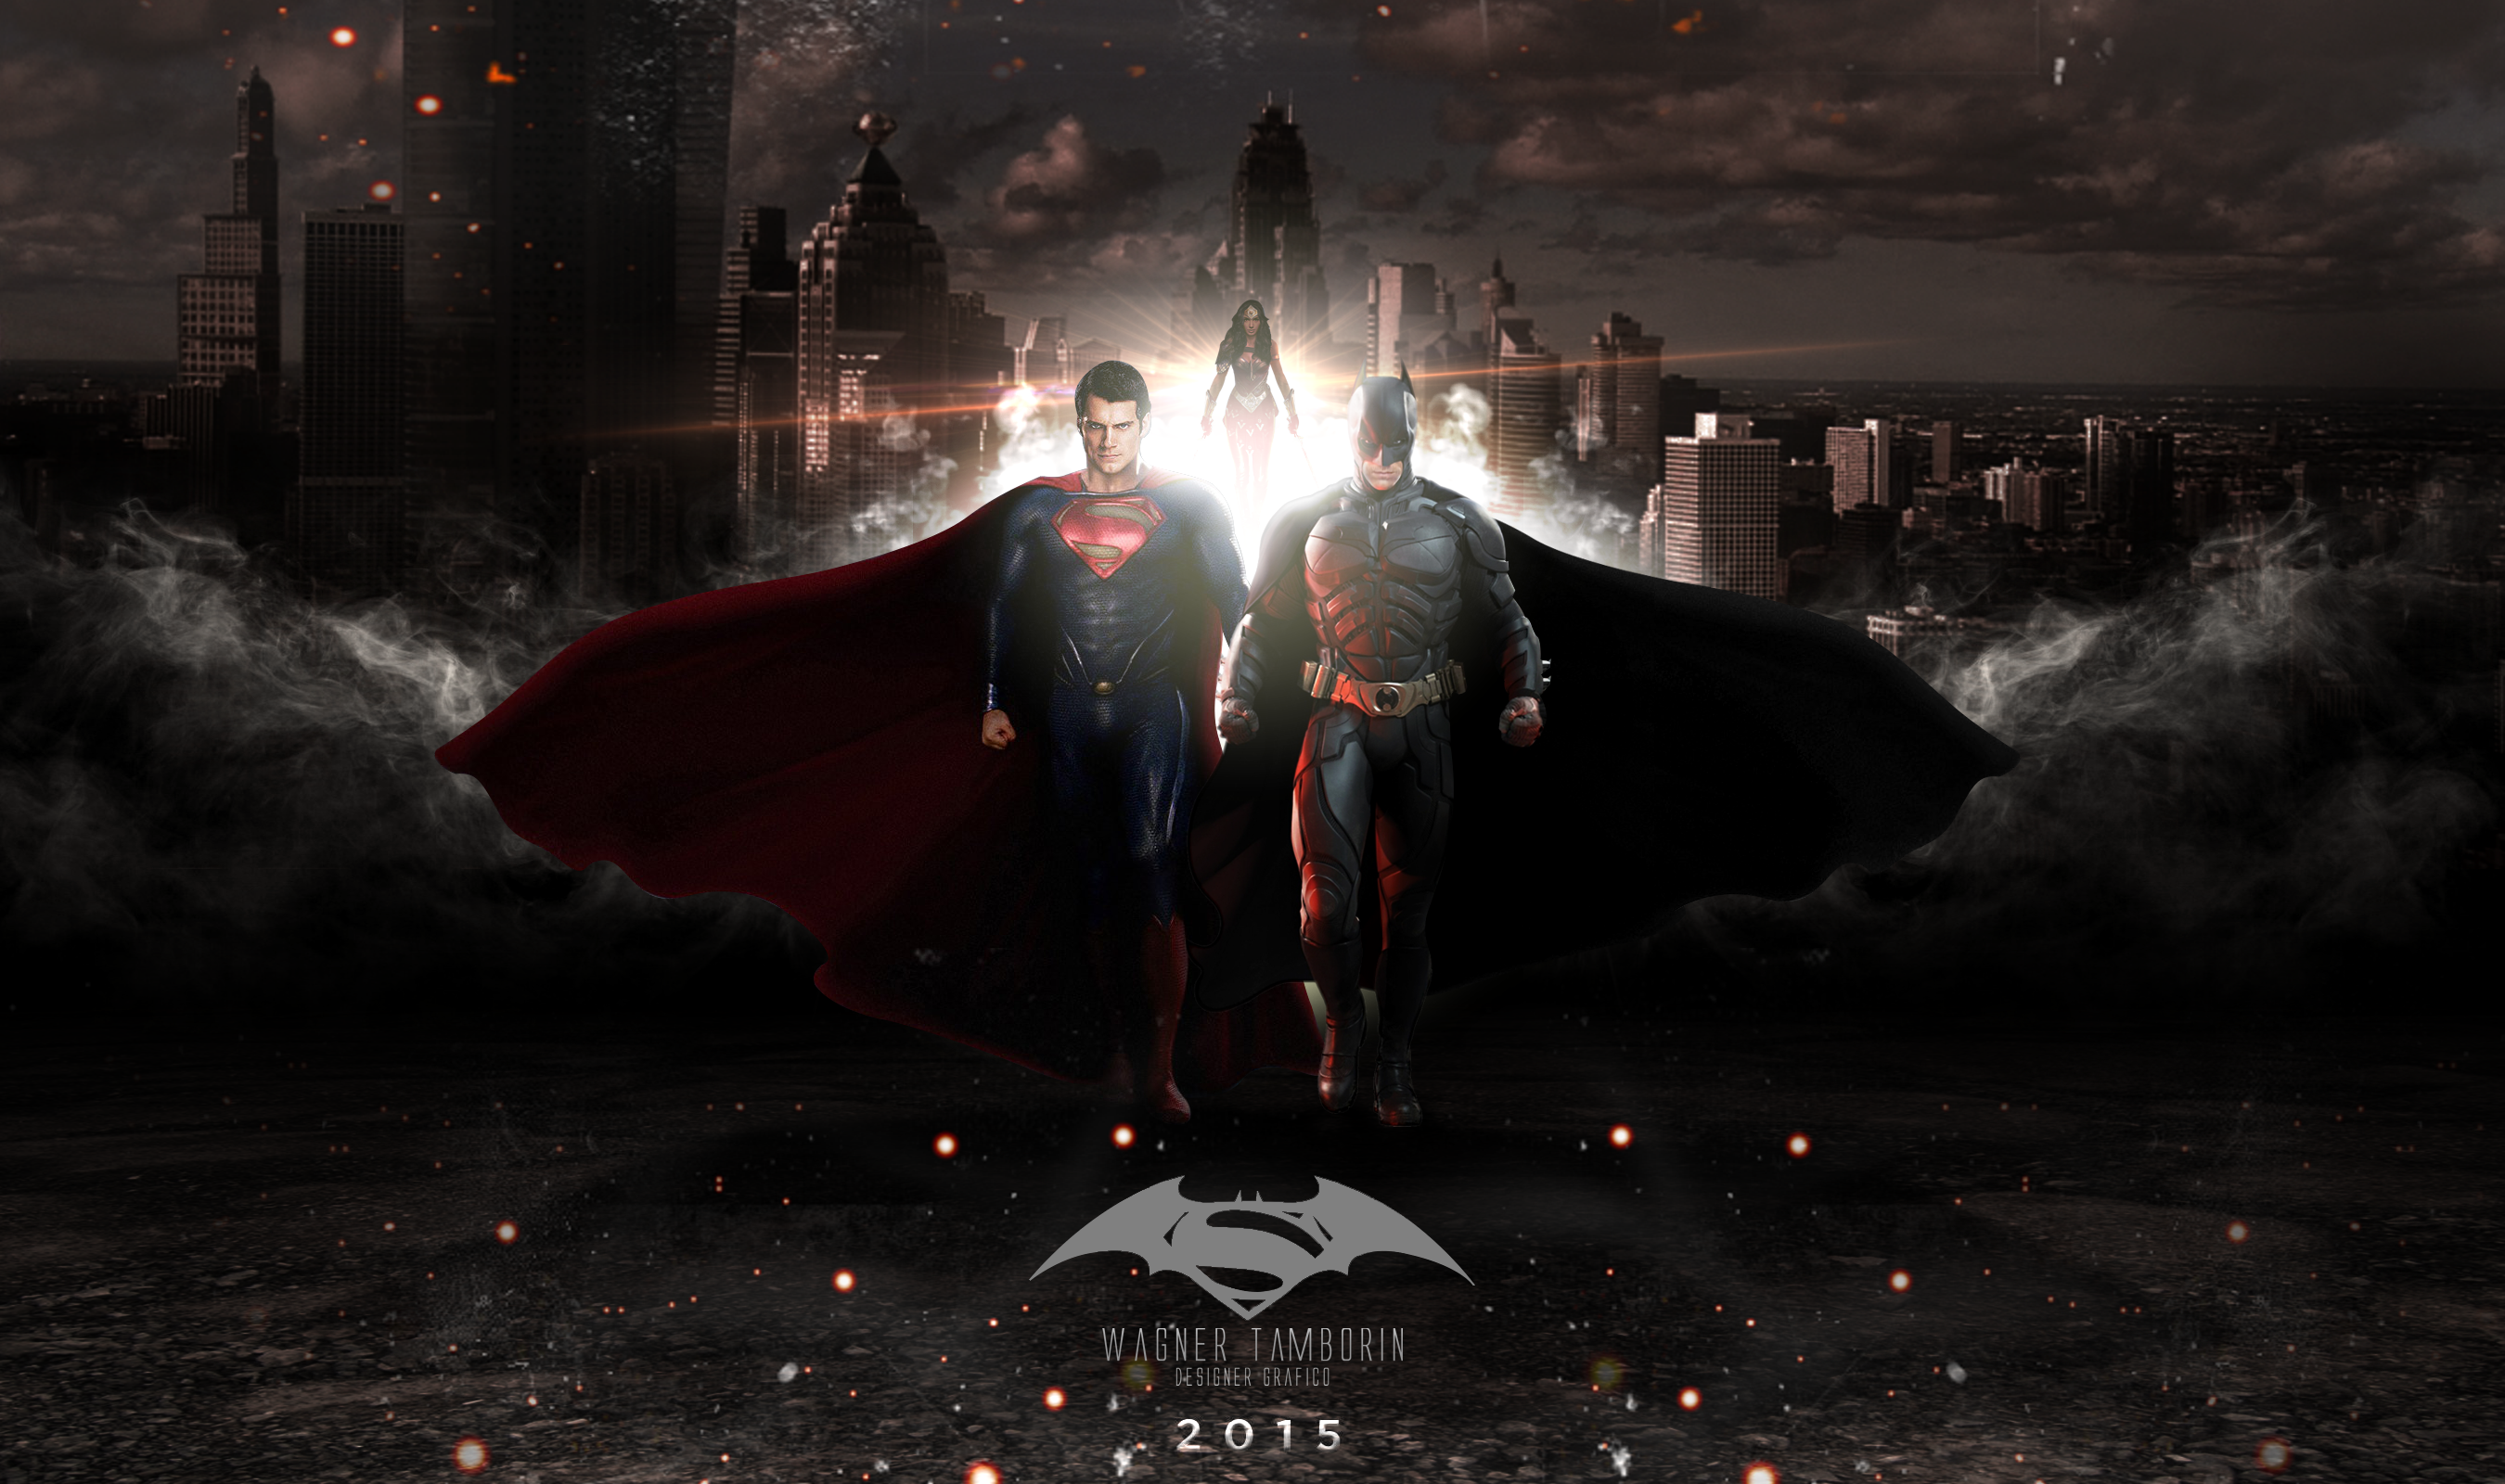 Download 2015 Movie Batman Vs Superman Wallpaper Images 21126 2700x1600